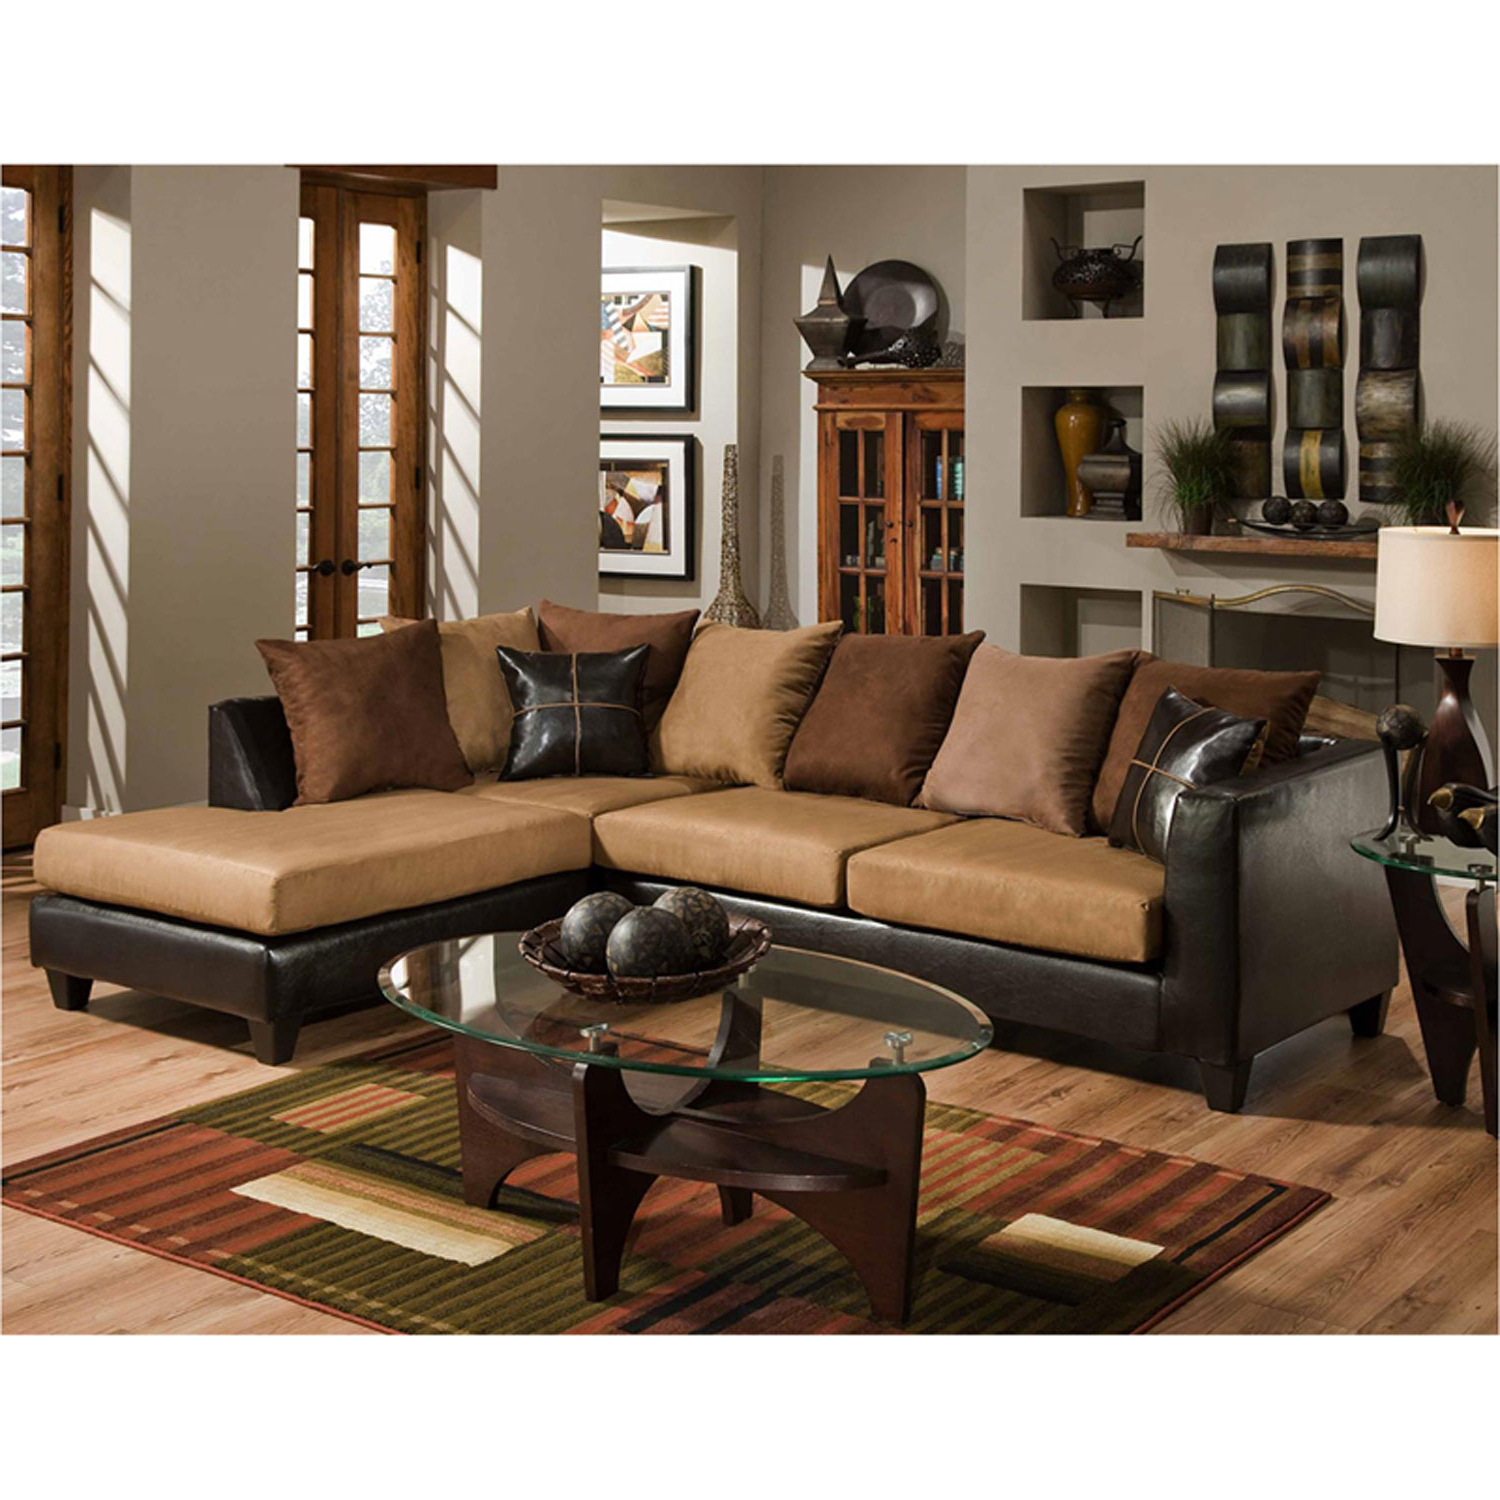 Parkside Sierra Chocolate Microfiber Sectional Rs 4184 01Sec Gg Regarding 2018 Sierra Foam Ii 3 Piece Sectionals (View 11 of 20)